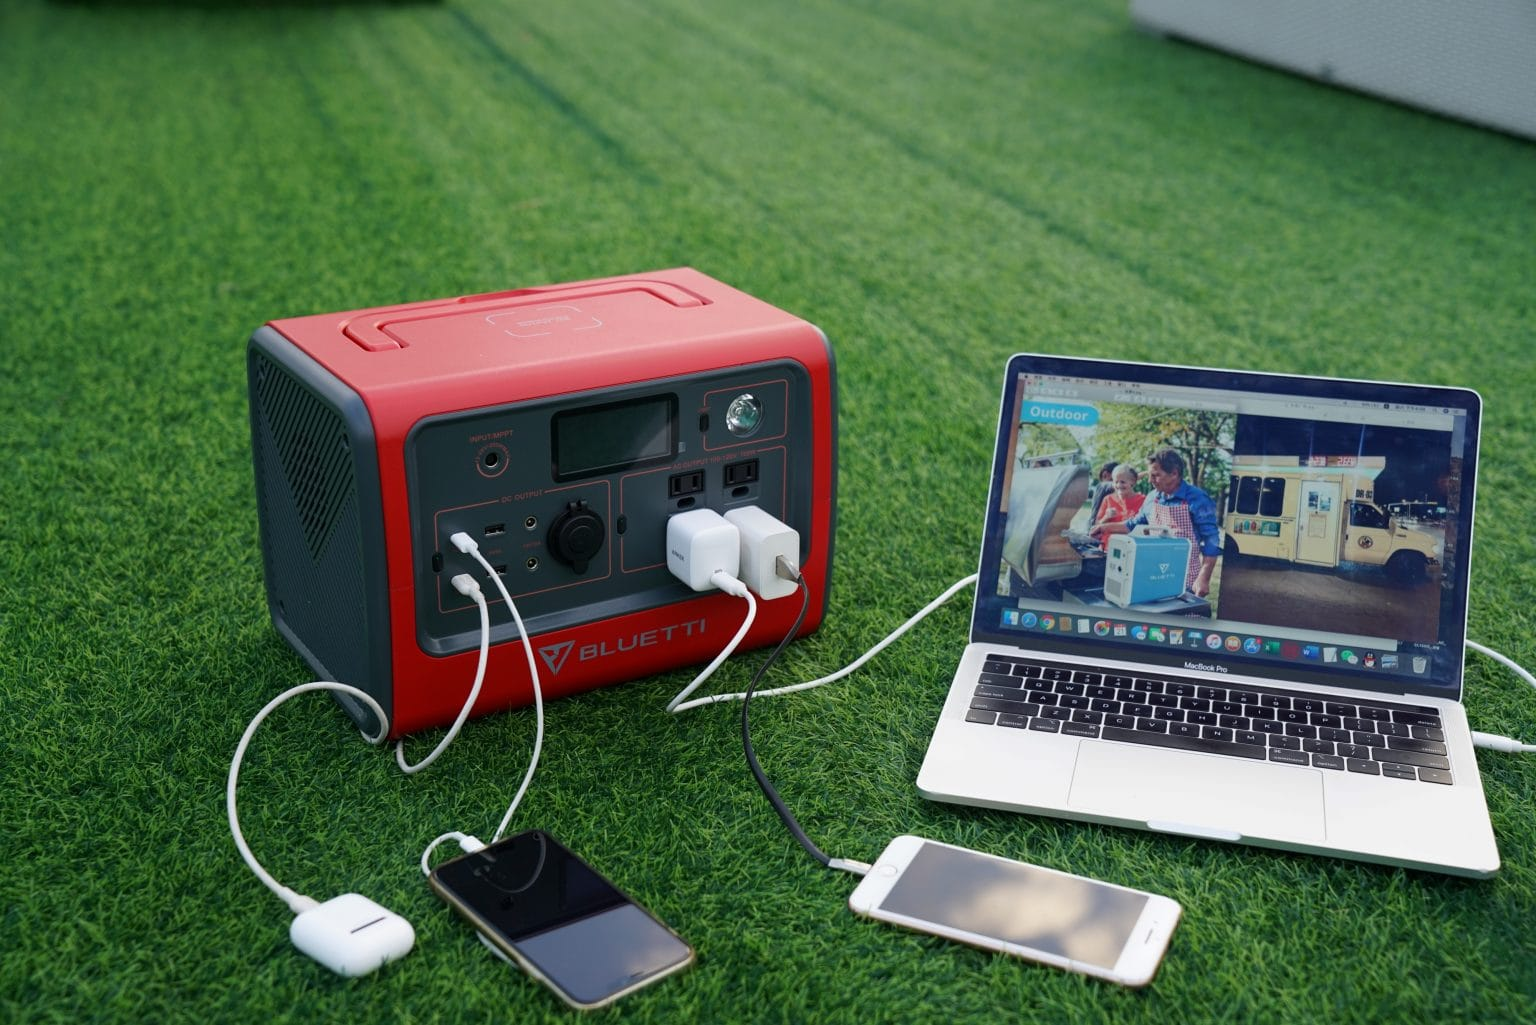 With the Bluetti EB70 Portable Power Station, your devices will be charged no matter what happens.